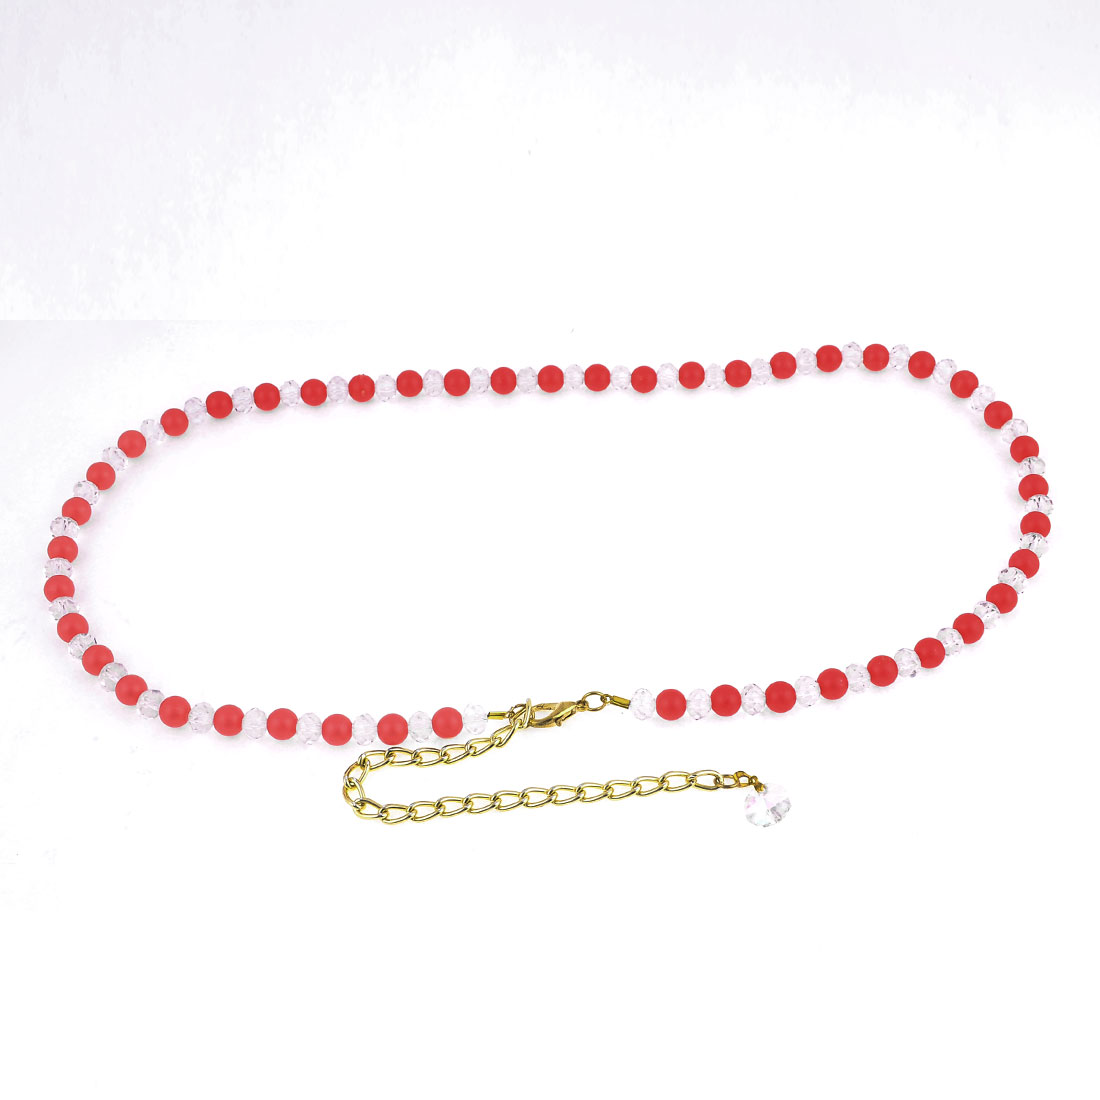 Lobster Clasp Watermelon Red Plastic Bead Decor Adjustable Chain Waist Belt Band